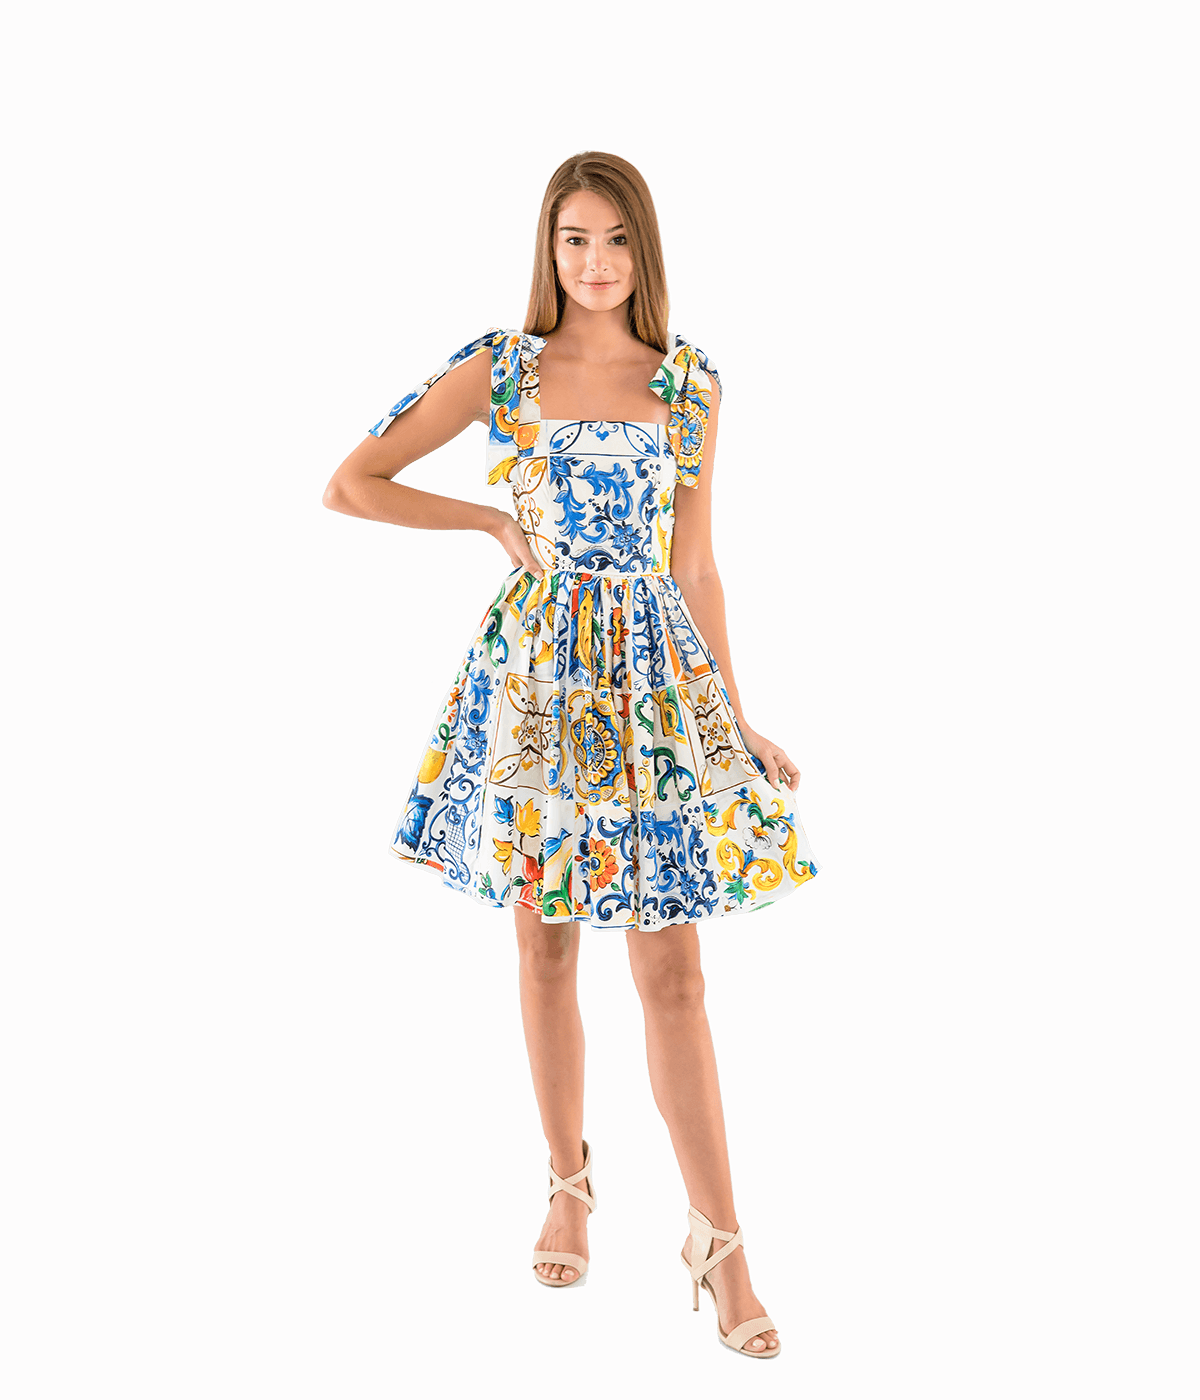 Majolica Print Mini Dress - Lady Jetset